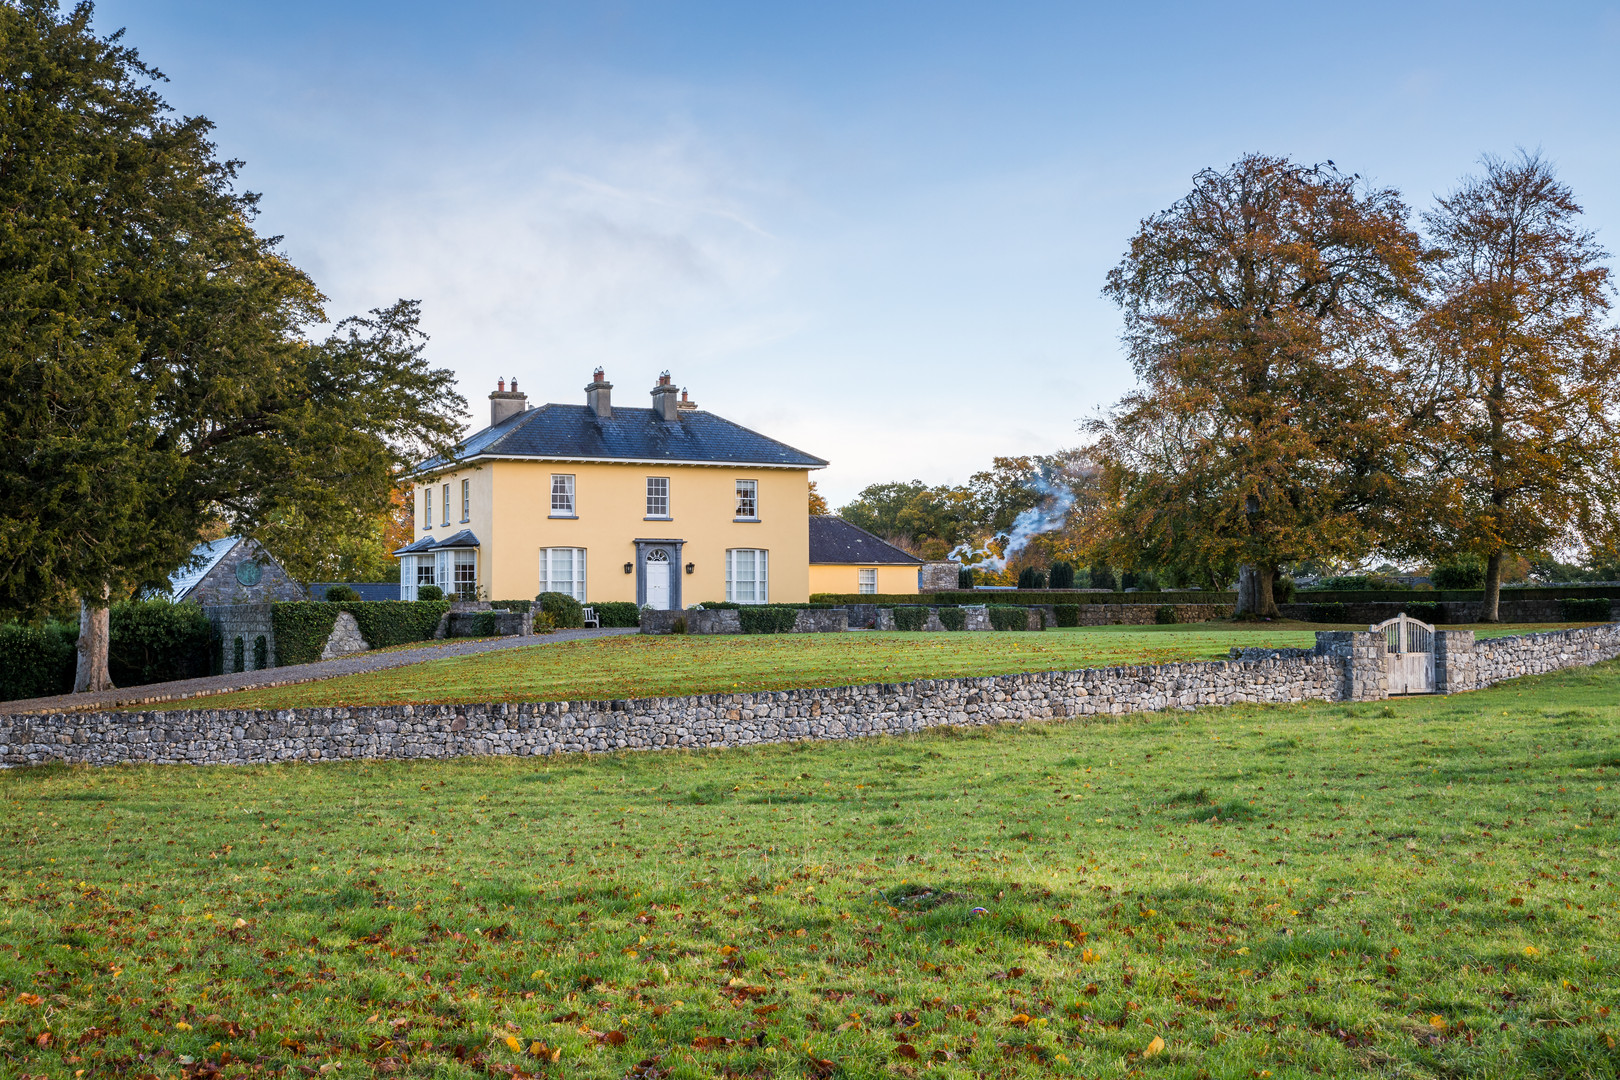 View across field with stone wall of Hollywood House, Limerick